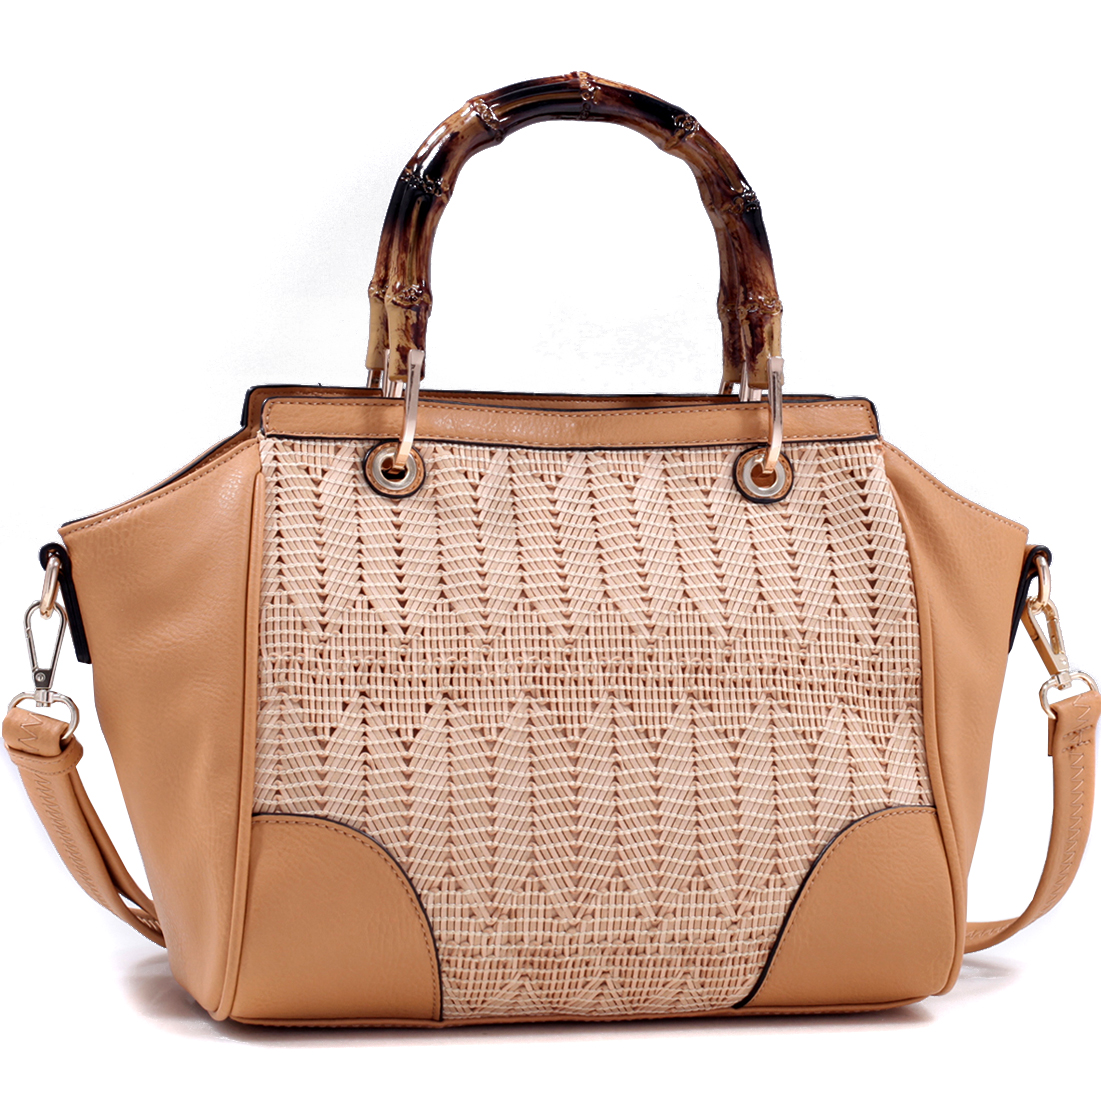 Wooden Handle Satchel Bag with Mesh Deco